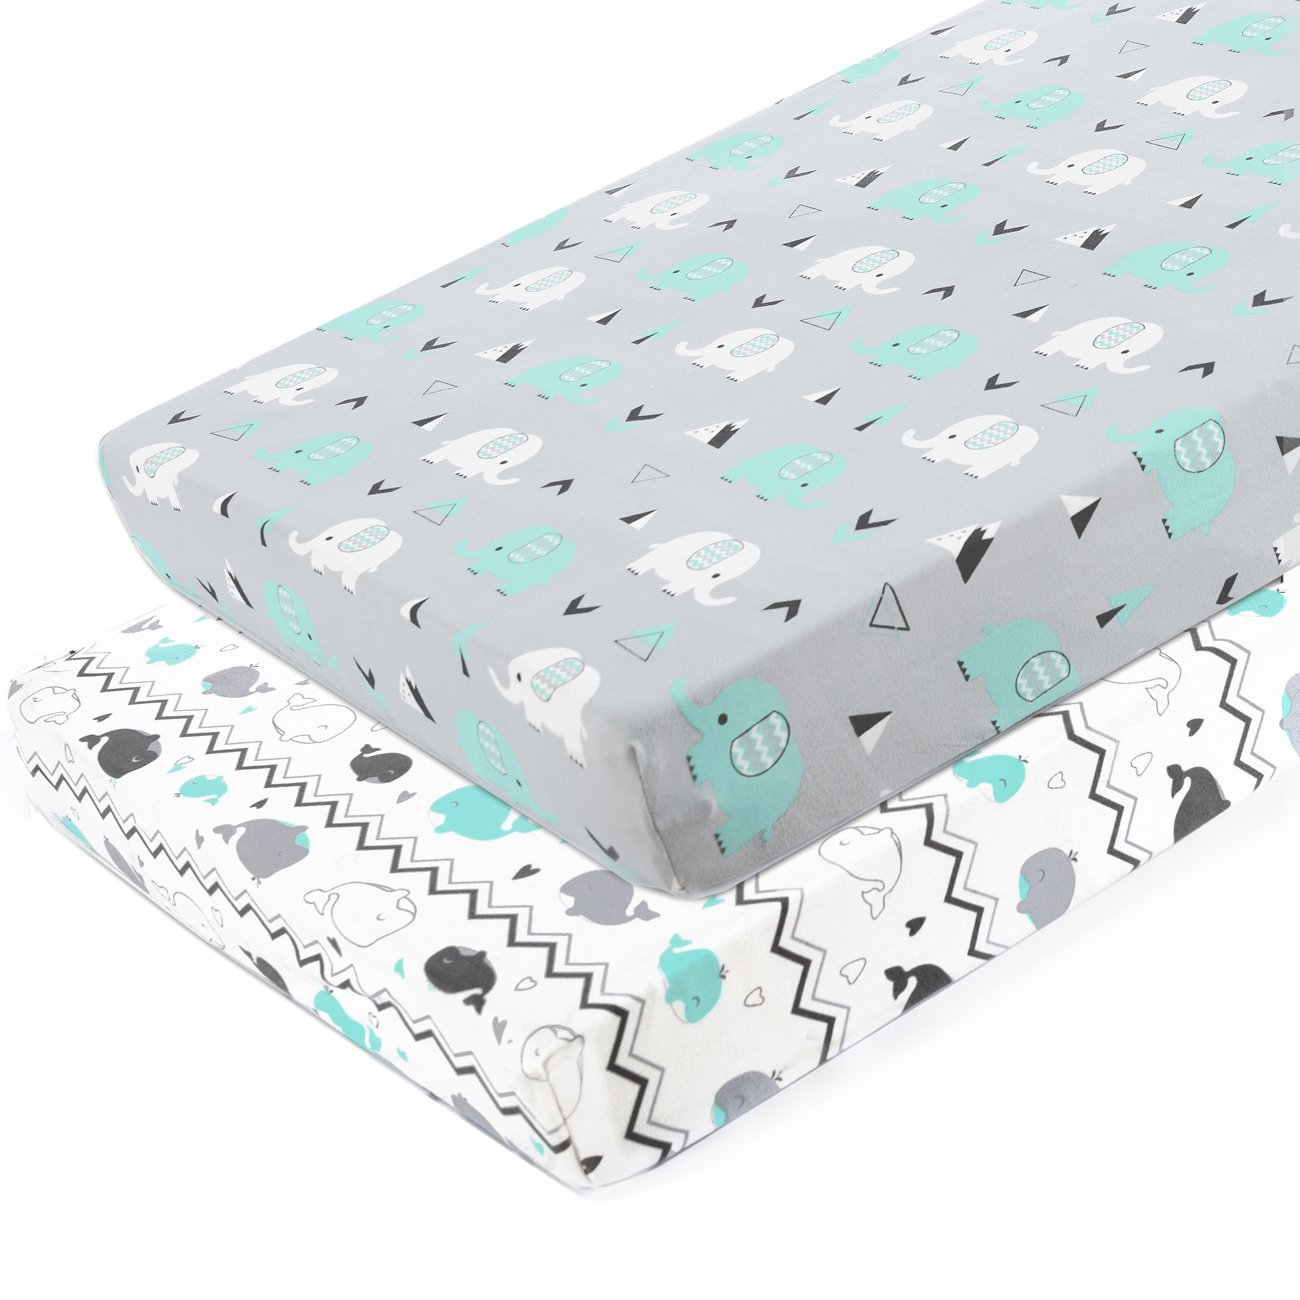 Pack n Play Stretchy Fitted Pack n Play Playard Sheet Set-Brolex 2 Pack Portable Mini Crib Sheets,Convertible Playard Mattress Cover,Ultra Soft Material,Elephant & Whale by BROLEX